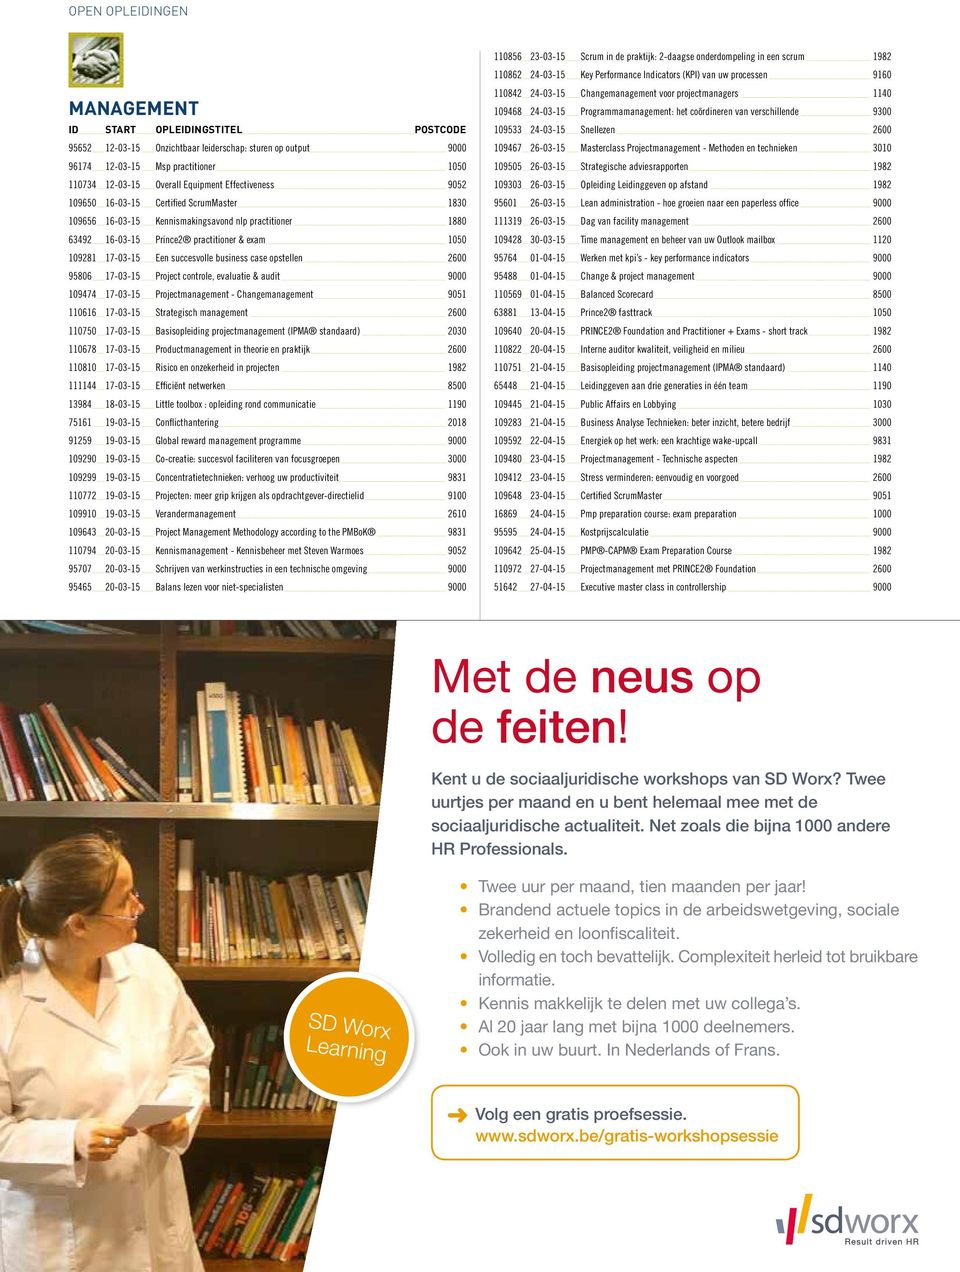 17-03-15 Project controle, evaluatie & audit 9000 109474 17-03-15 Projectmanagement - Changemanagement 9051 110616 17-03-15 Strategisch management 2600 110750 17-03-15 Basisopleiding